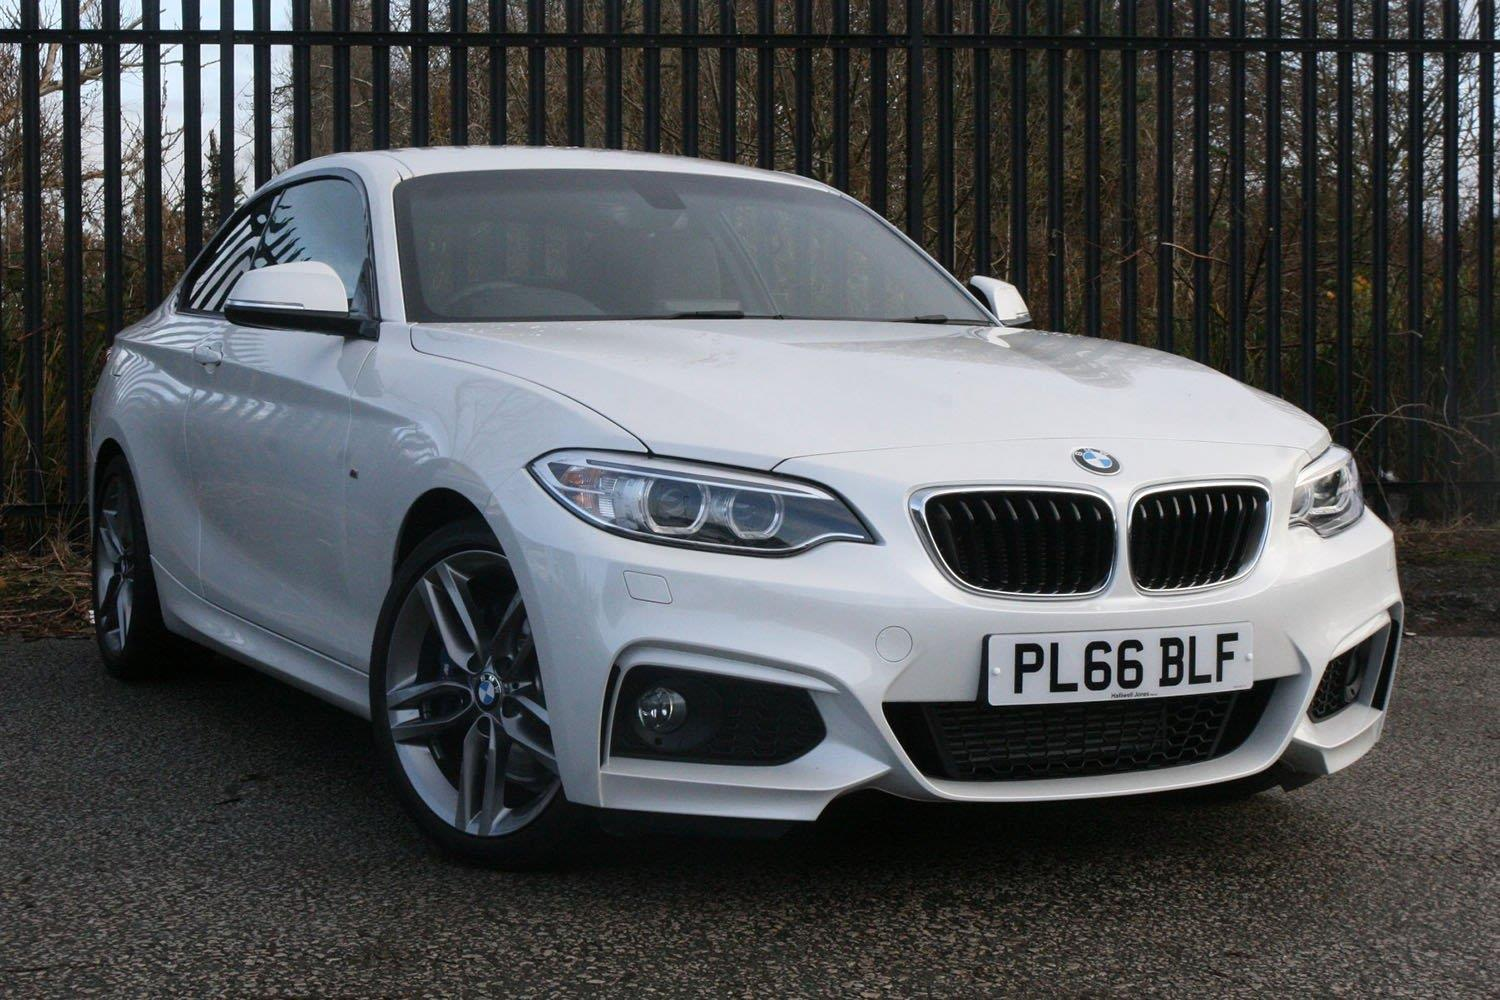 BMW 2 Series Coupé PL66BLF - Image 7